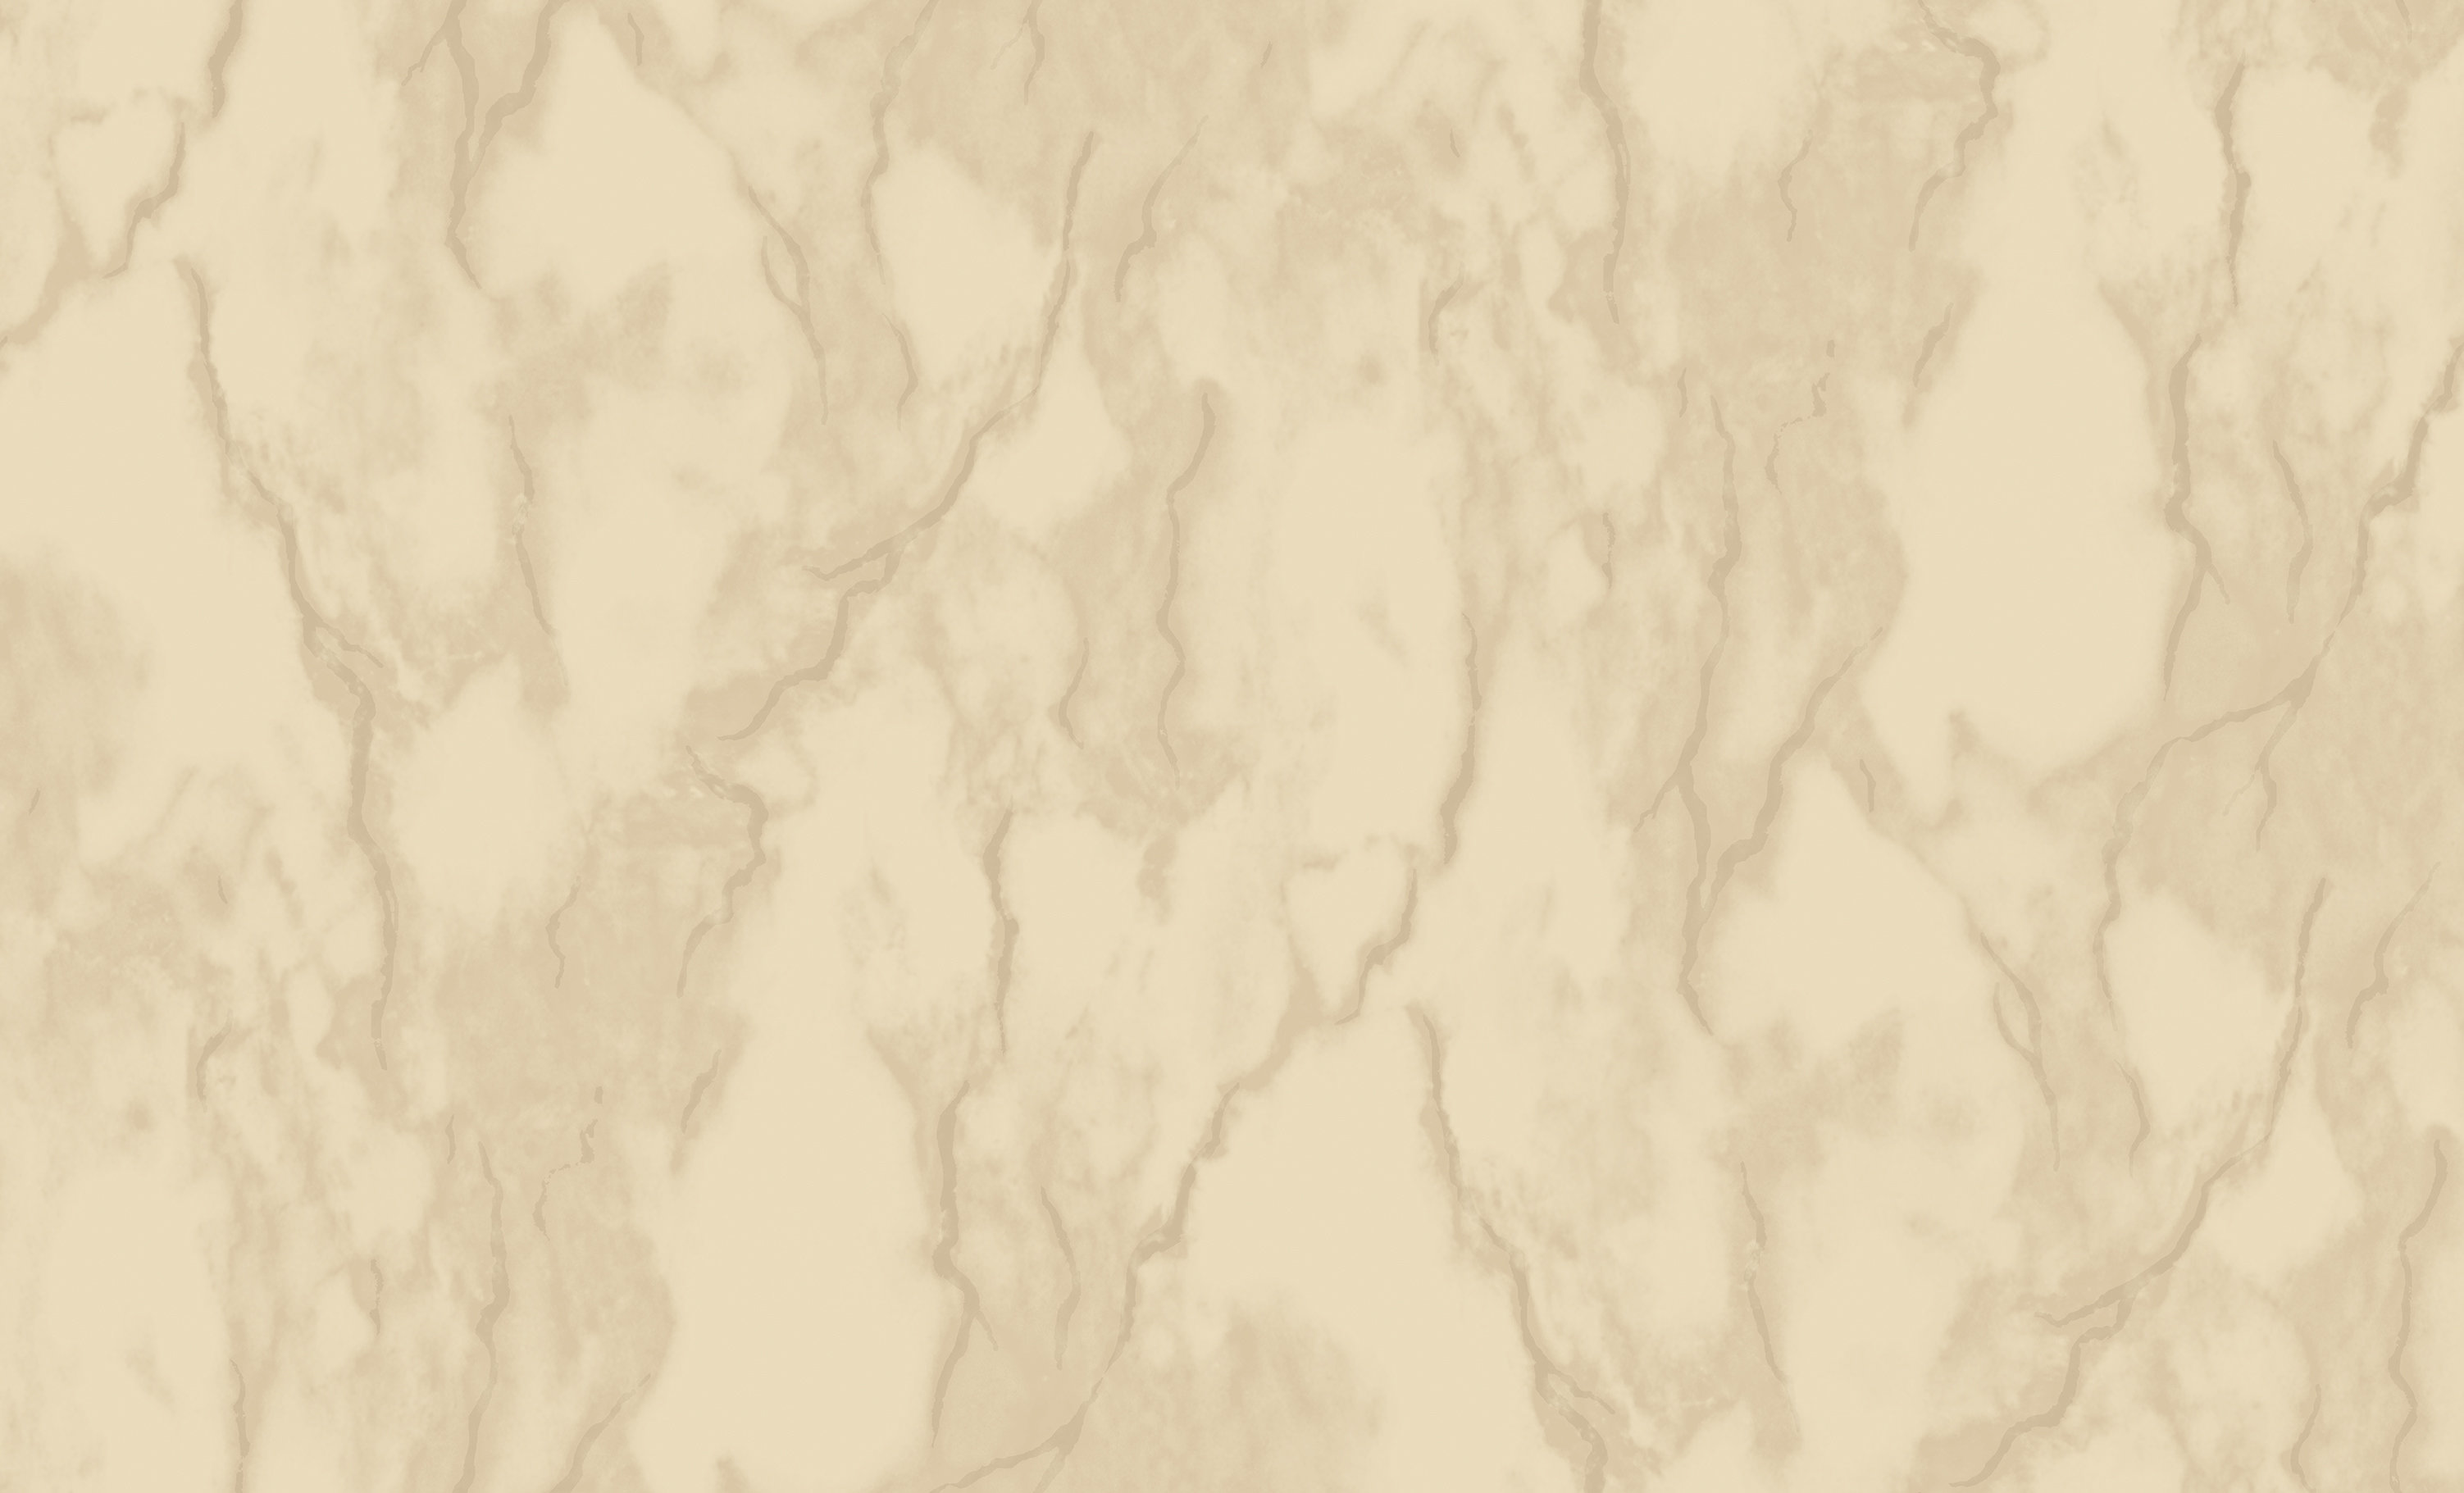 Cool Wallpaper Marble Plain - vg1101-rgb  You Should Have_35999.jpg